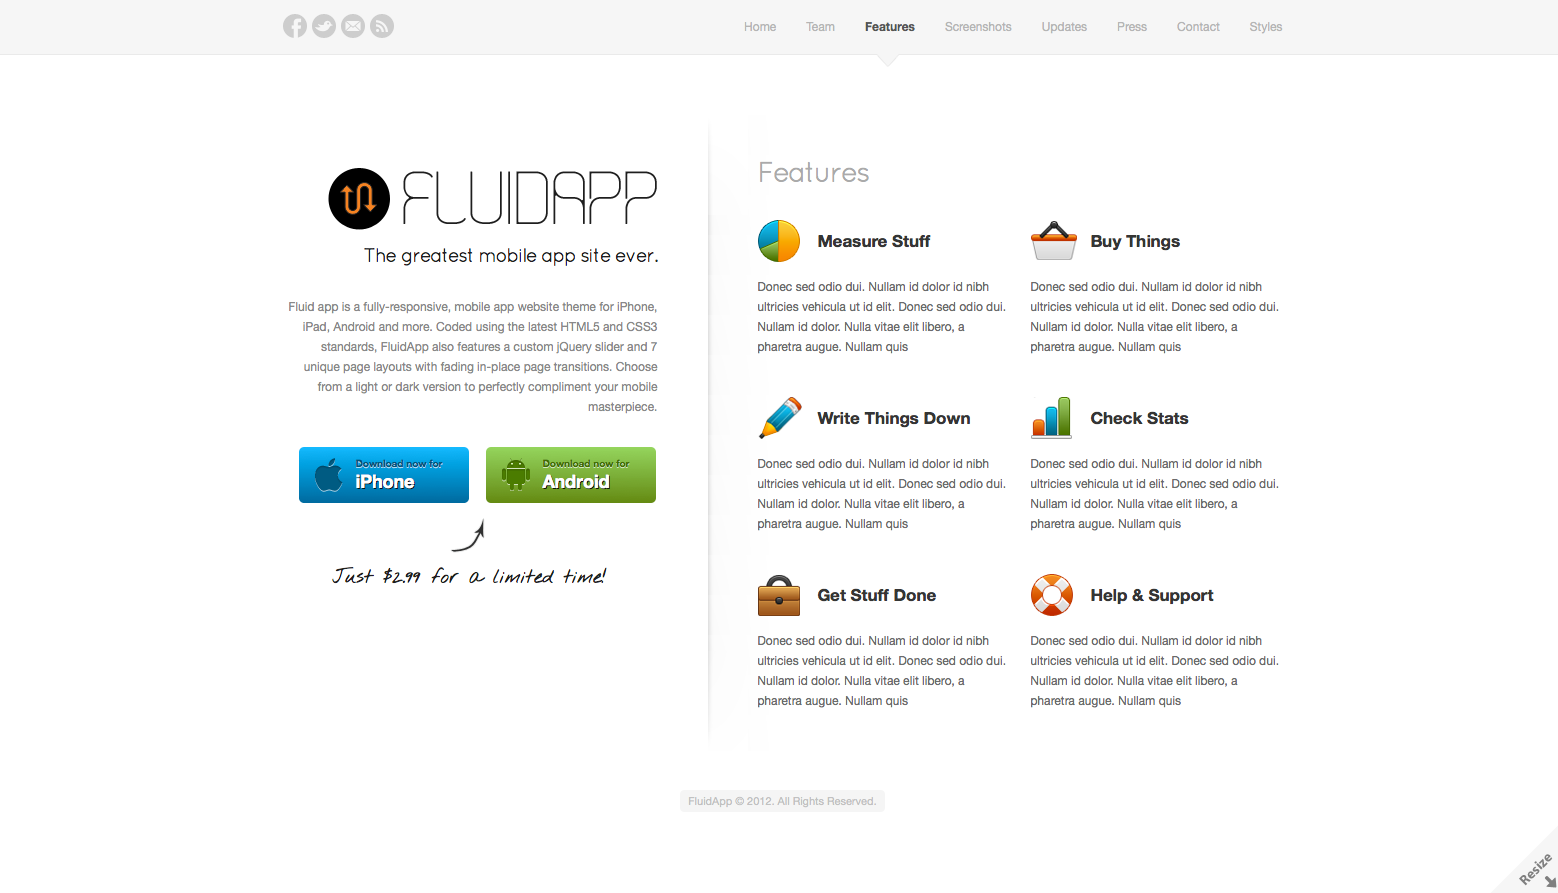 FluidApp - Responsive Mobile App WordPress Theme - Features - List all of your app's features in a tightly laid out grid with colorful eye-catching icons